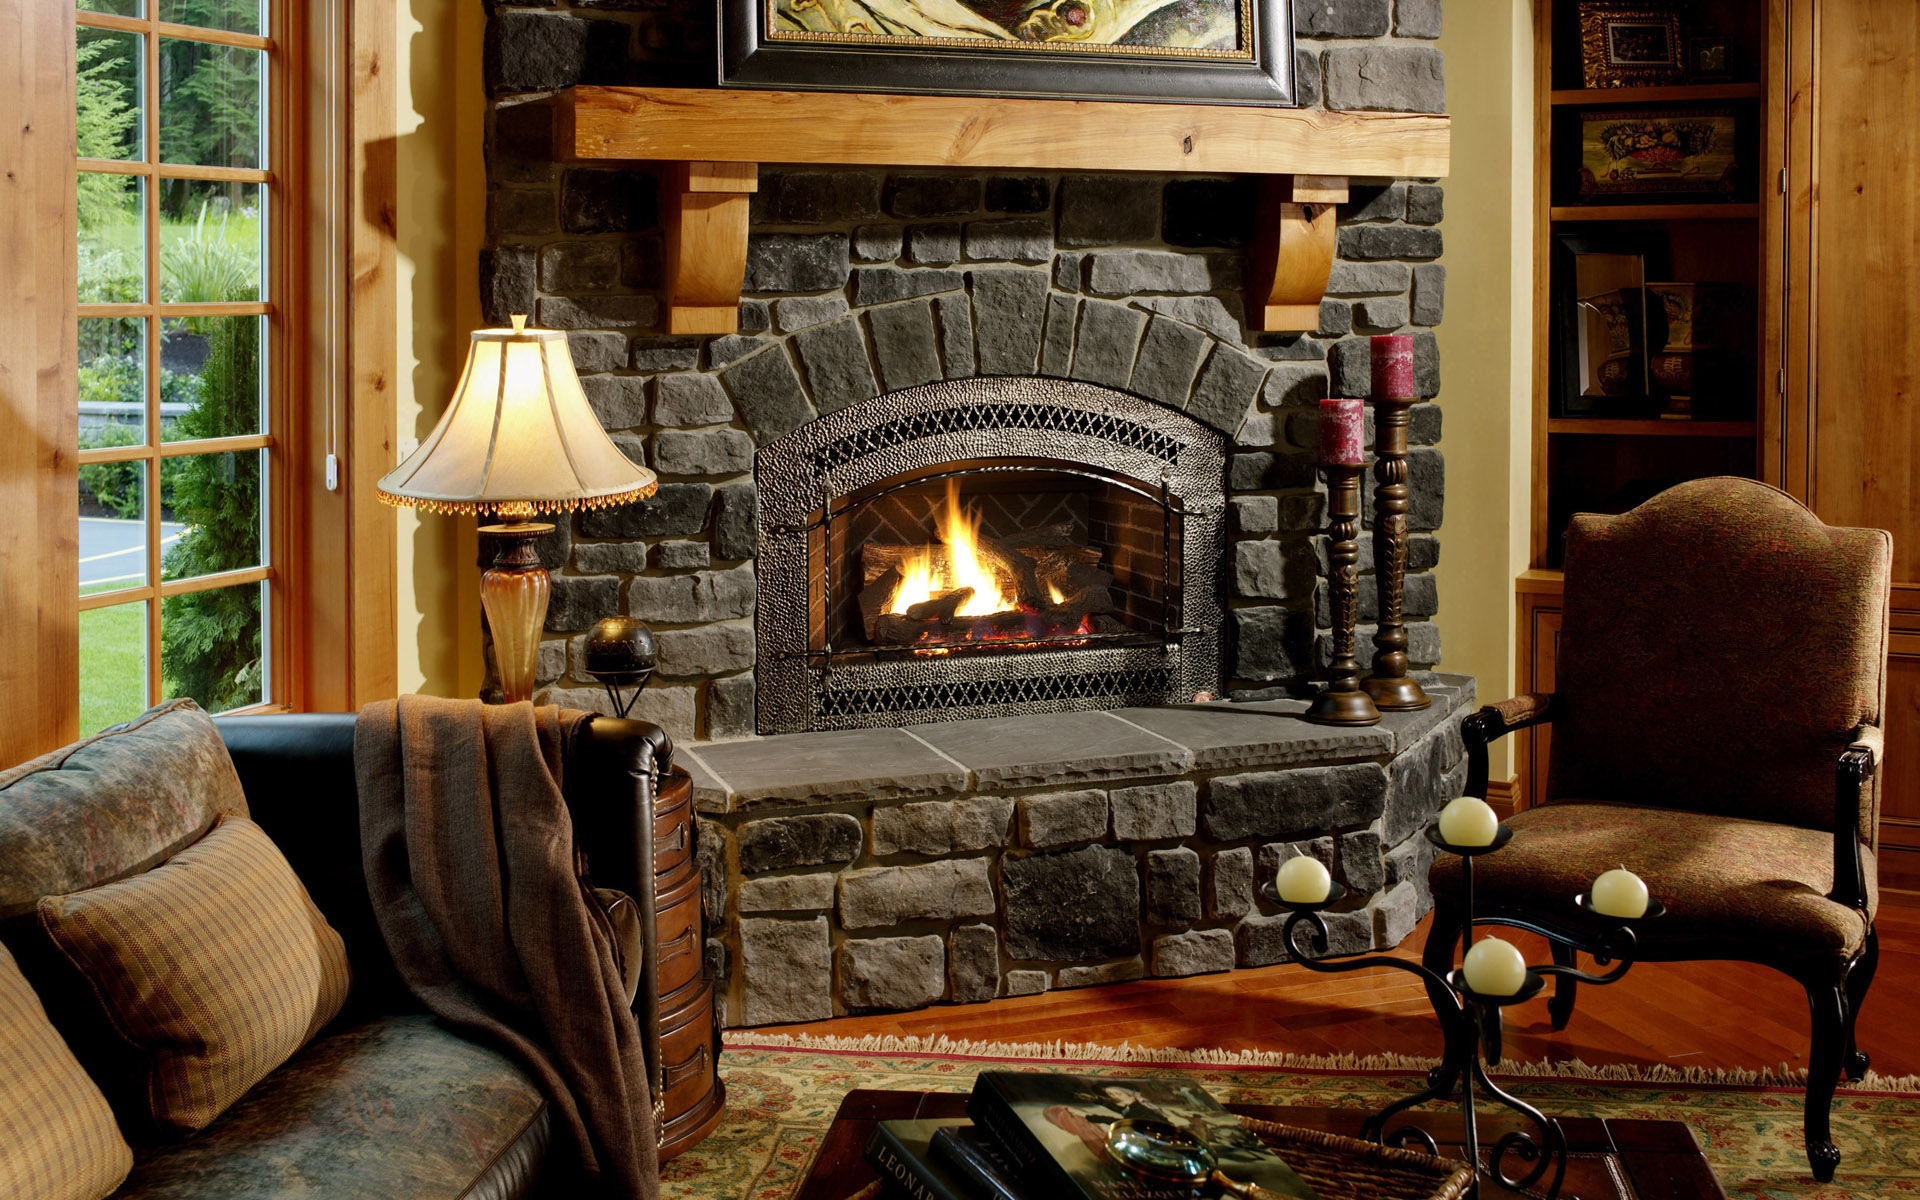 Fireplace Wallpaper Hd 47180 1920x1200px